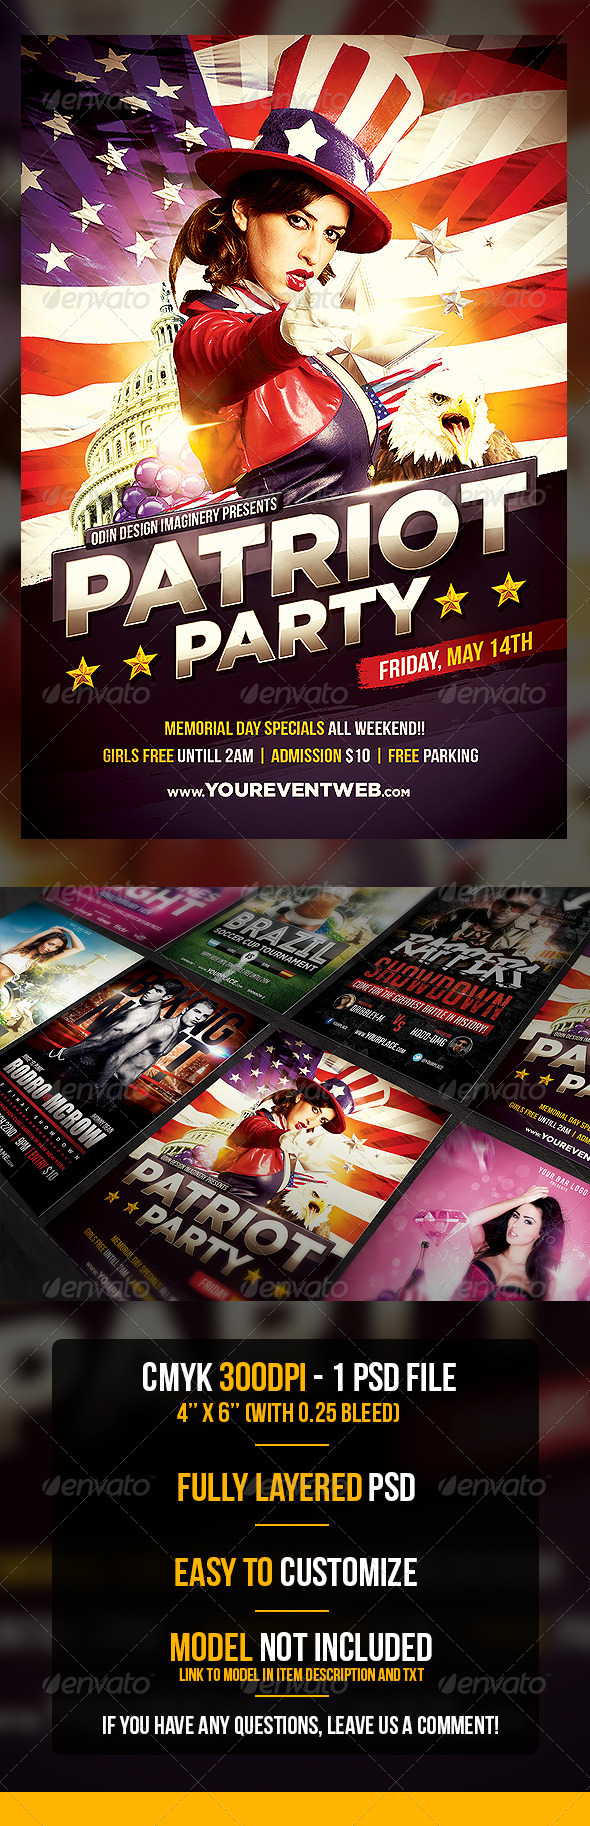 Patriot Party Flyer Template - Flyers Print Templates